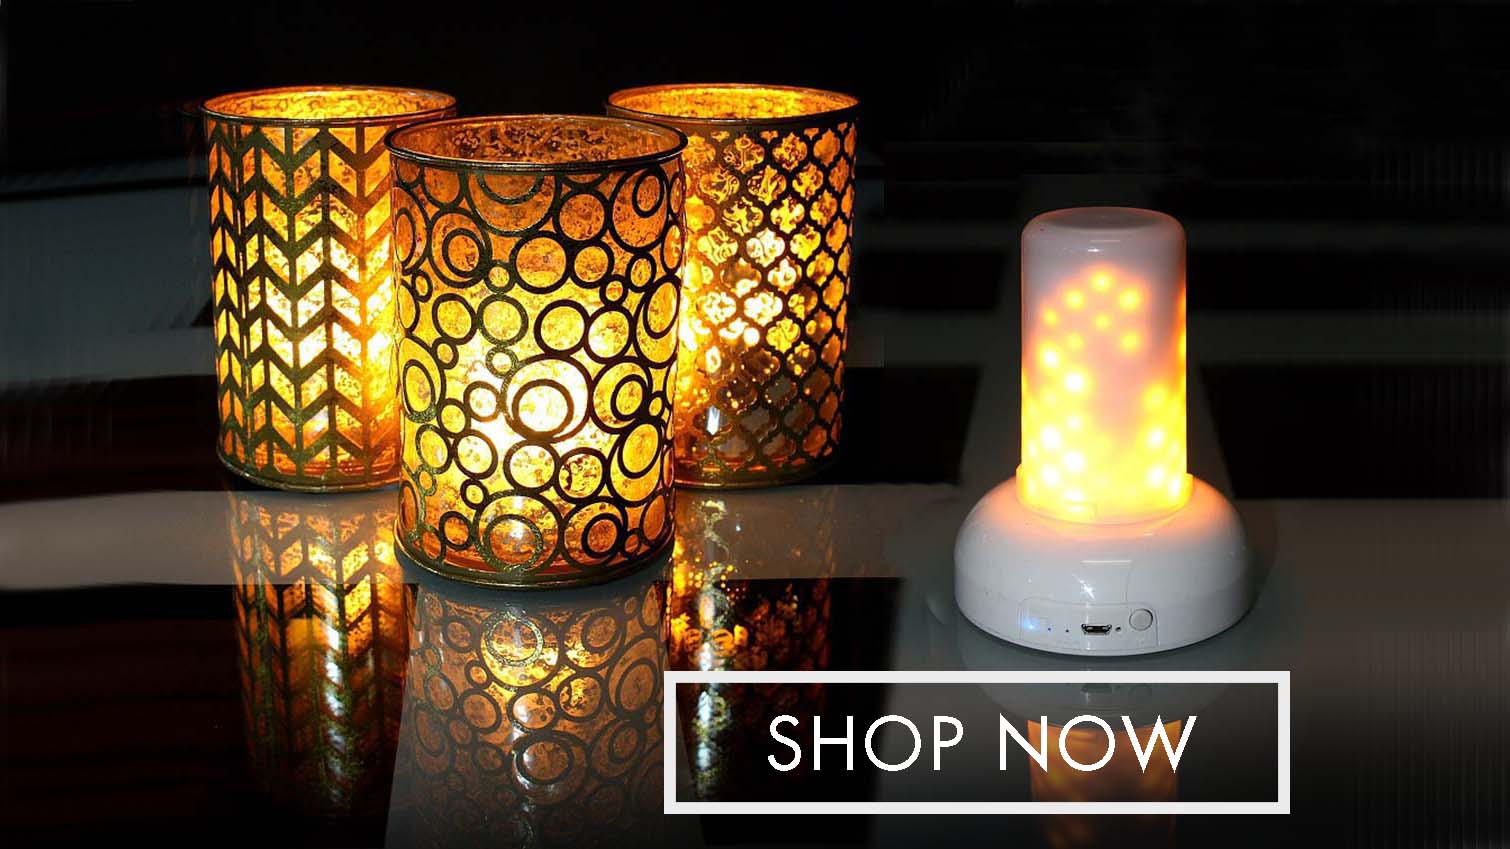 Flame Wave candles by Light Garden